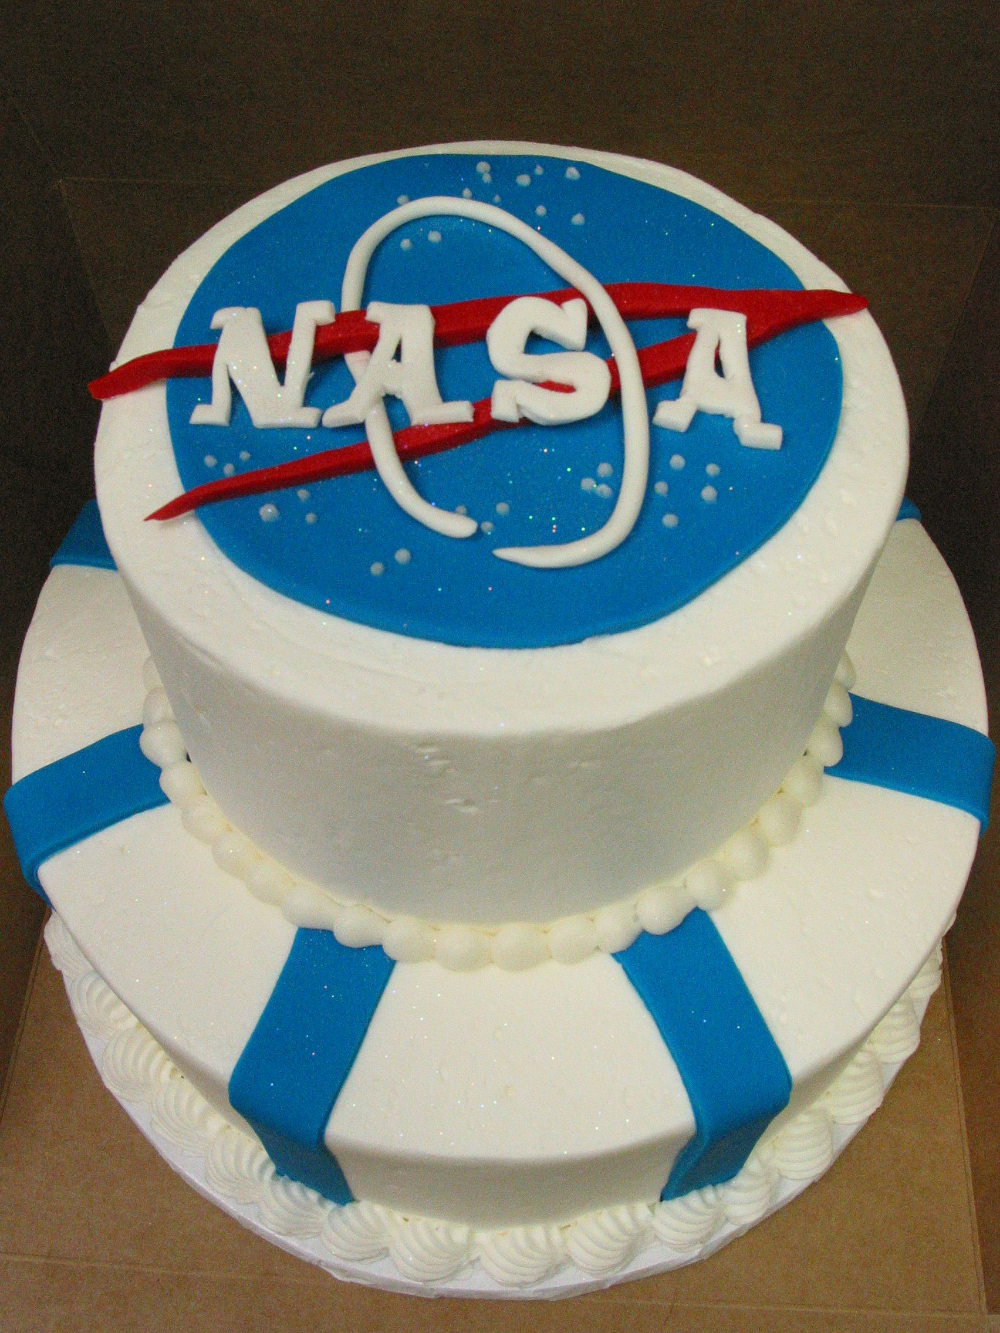 nasa birthday cake ideas Google Search Cake, Grooms